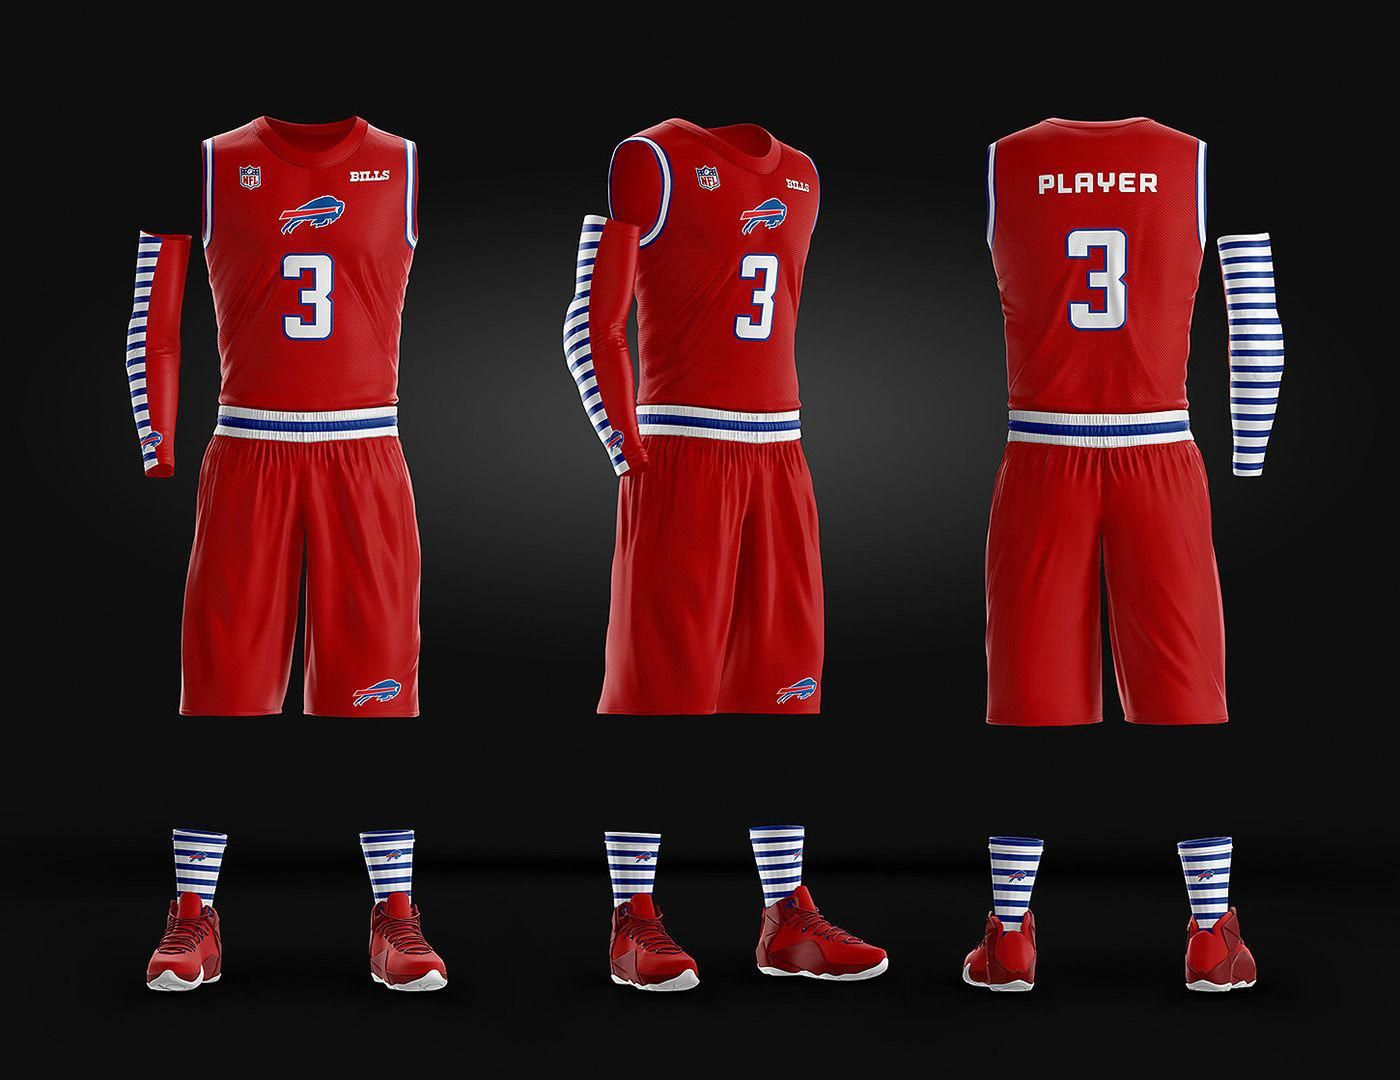 Basketball Uniform Jersey Psd Template On Behance Basketballcourt Basketball Uniforms Design Basketball Uniforms Jersey Design